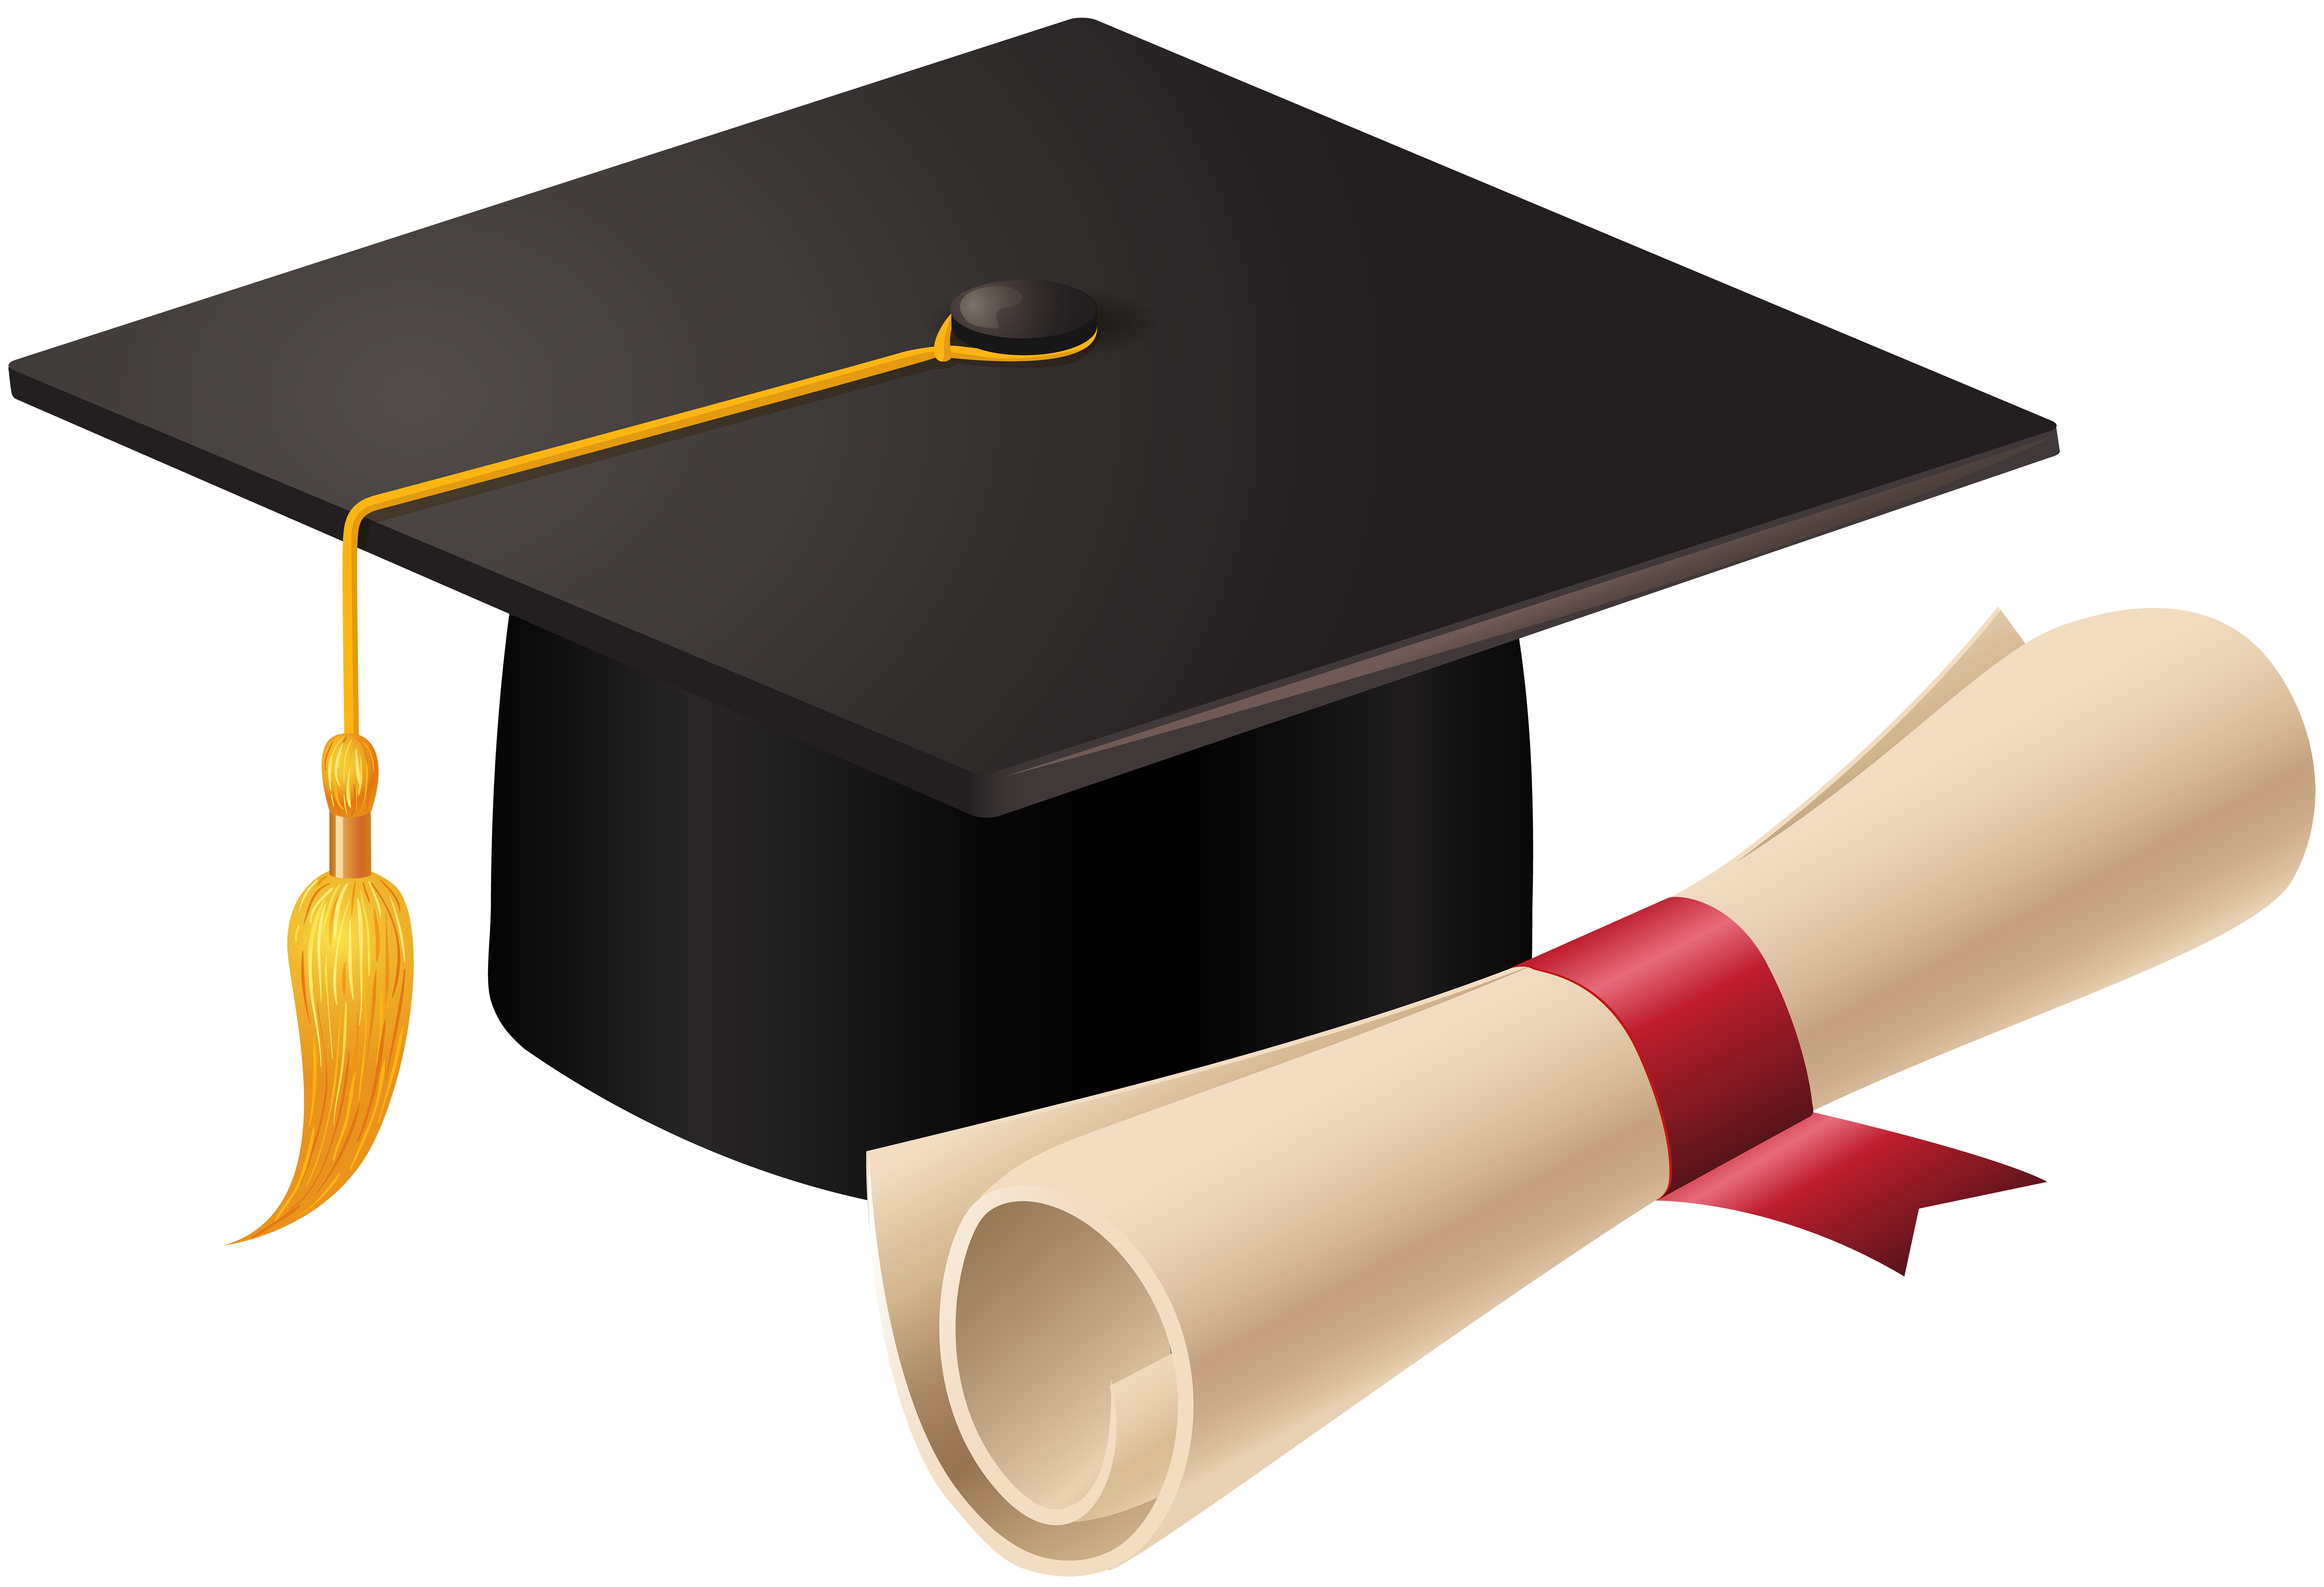 svg royalty free library And diploma png clip. Vector books graduation cap